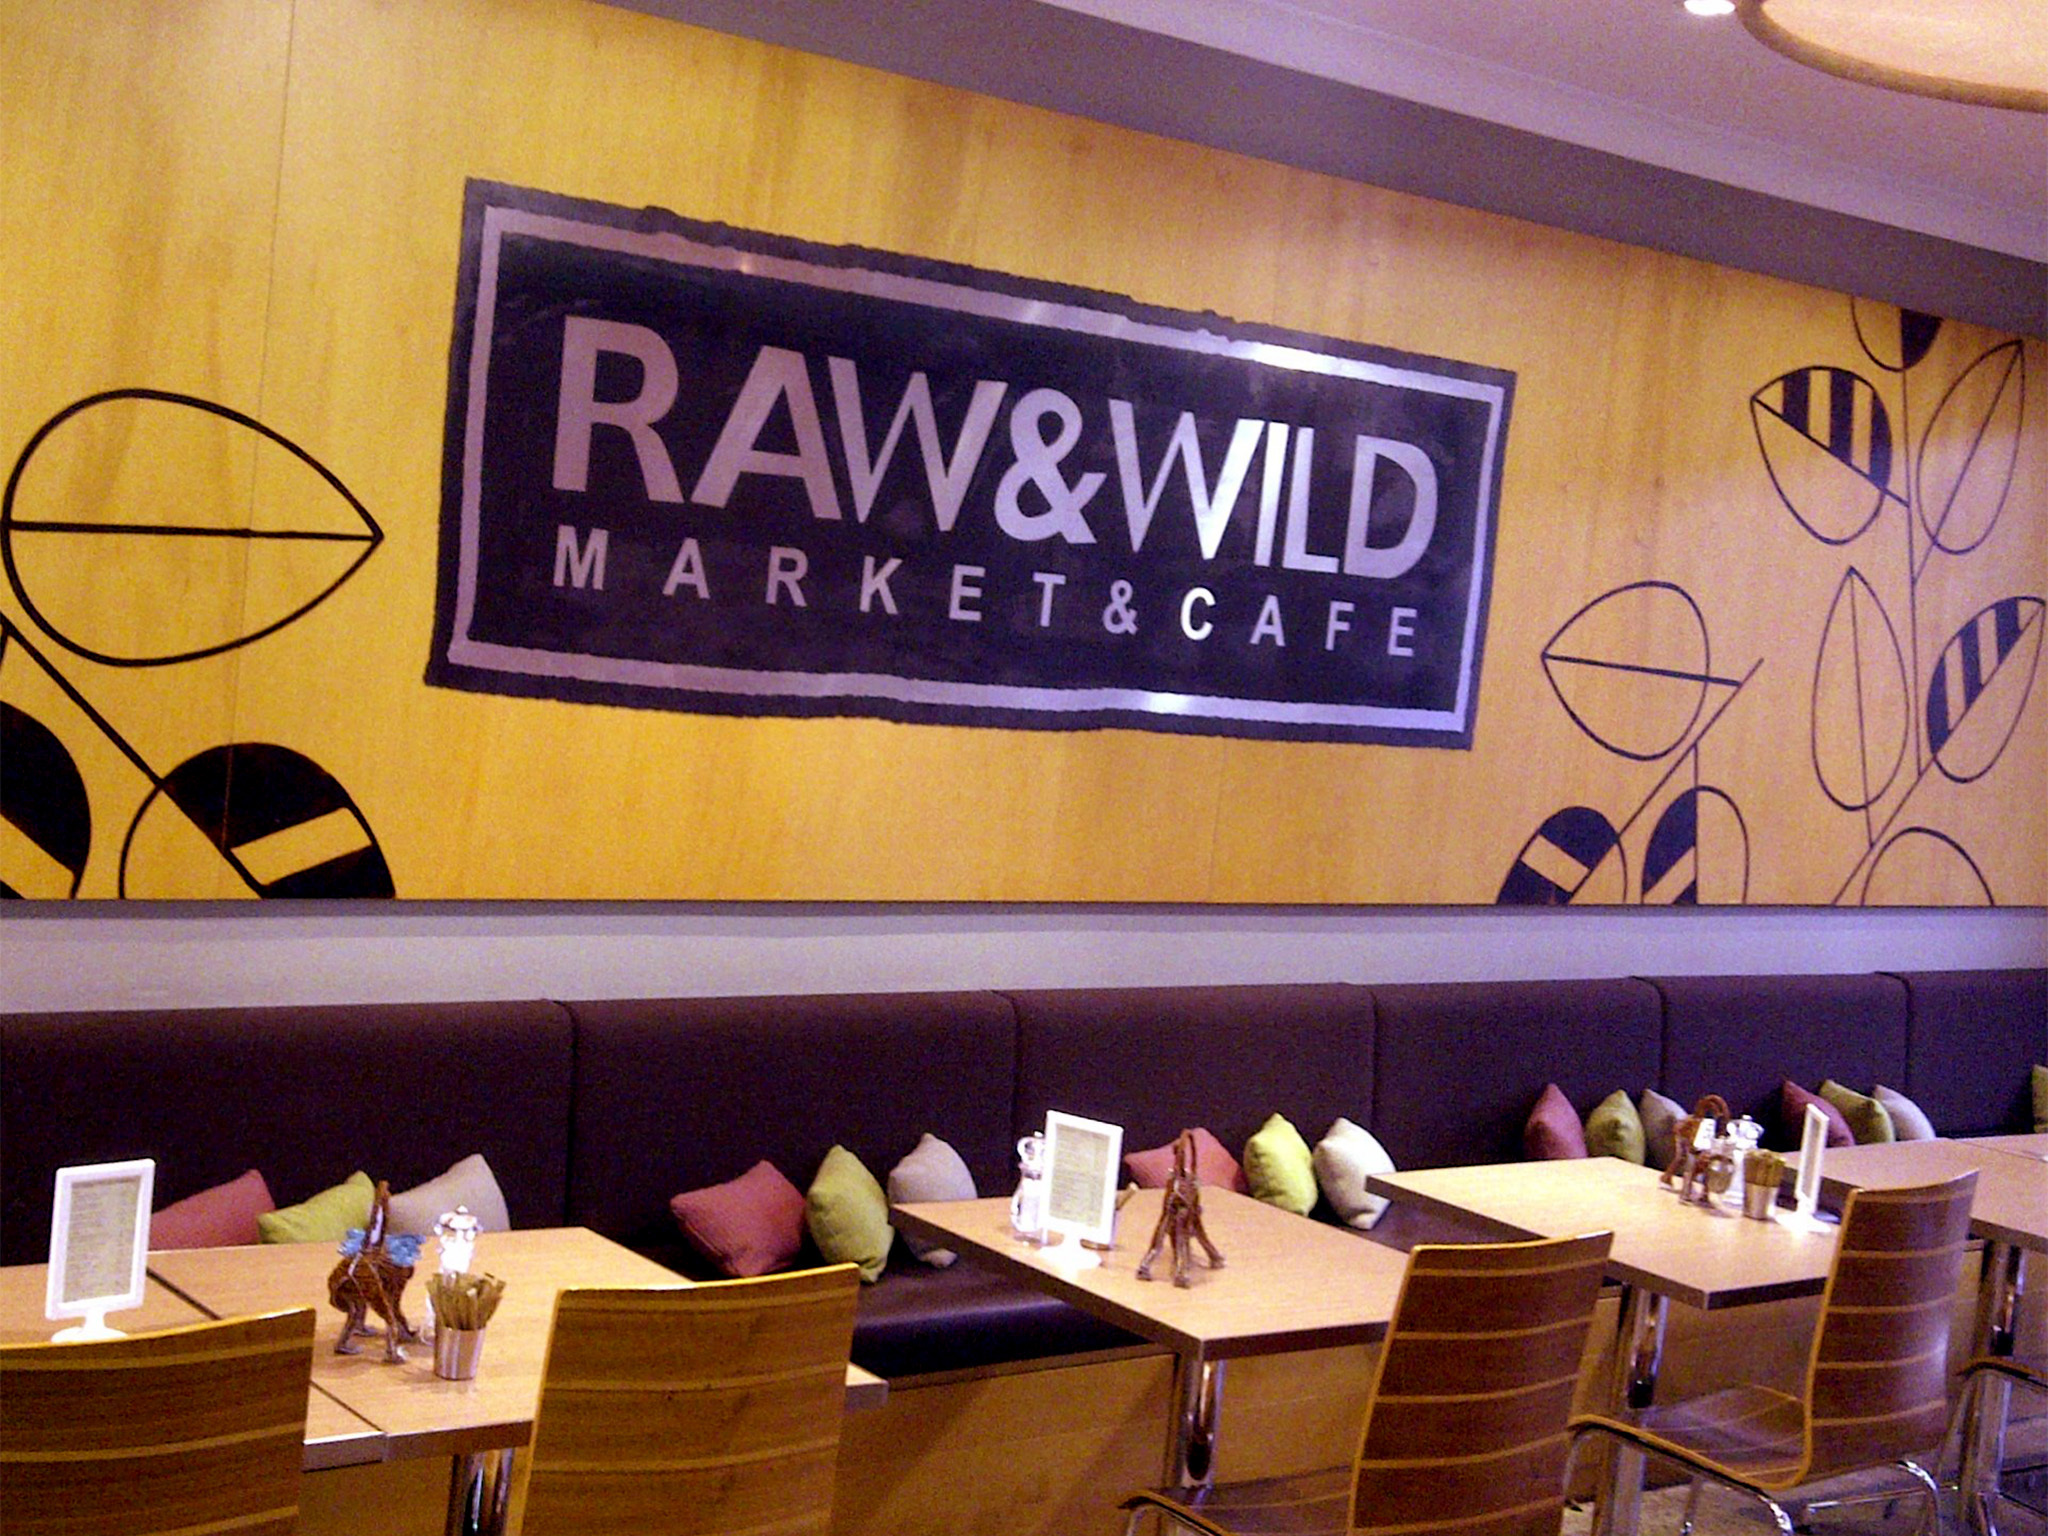 An interior shot of booth seats and tables at Raw & Wild